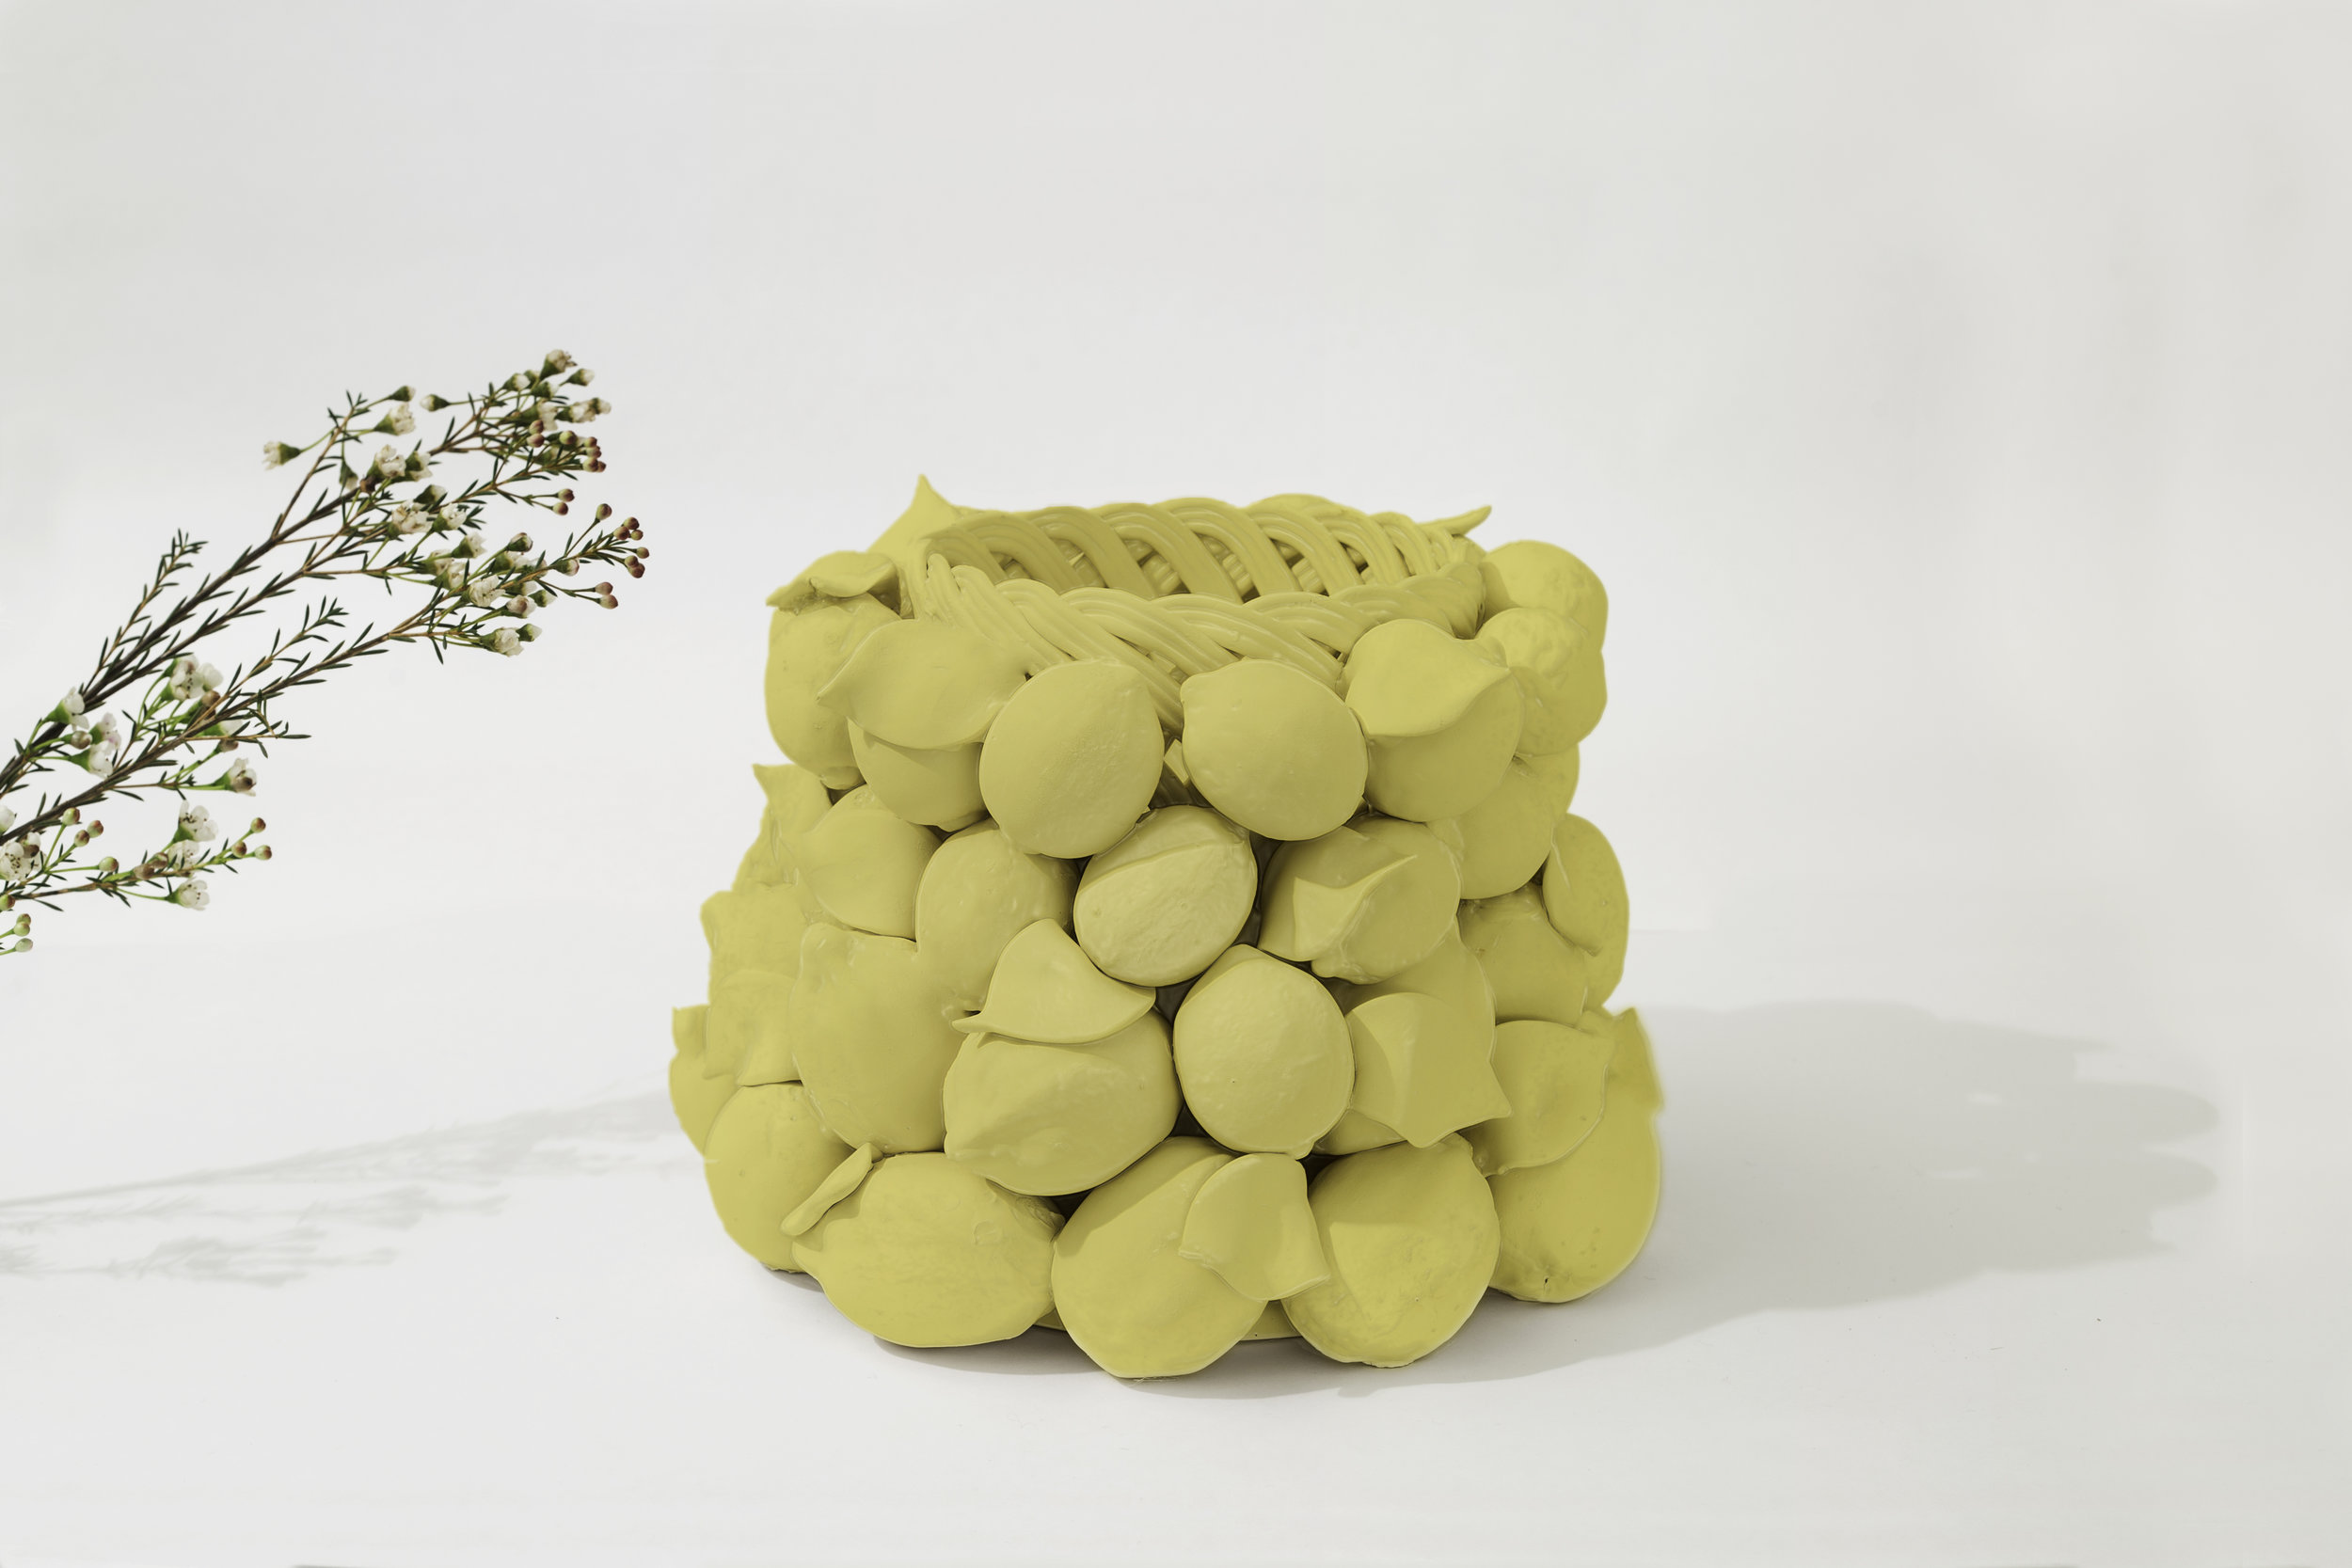 "INTRECCI  Giorgia Zanellato & Daniele Bortotto for Lanzarin Ceramiche    An homage to traditional ceramic manifacturing techniques Intrecci by Zanellato and Bortotto symbolizes a historic shift in the production of ceramic fruit baskets that, similar to the work of Caravaggio, uses inanimate objects as message bearers. The piece is the result of a collaboration with Lanzarin Ceramiche, a workshop renowned for its use of a rare technique exclusive to the Veneto region, 'a fettucia.' ""We started with a series of sketches before moving onto the repertoire of classical pieces. The final result is the culmination of many attempts and prototypes, realized in close collaboration with the ceramists who crafted the piece."" - Giorgia Zanellato and Daniele Bortotto Giorgia Zanellato and Daniele Bortotto met in Lausanne, Switzerland, where they both studied product design at ECAL. Zanellato/Bortotto Studio was founded in Treviso, Italy, in 2014. The pair have collaborated with several Italian and International brands and their work has been exhibited in galleries and museums worldwide."